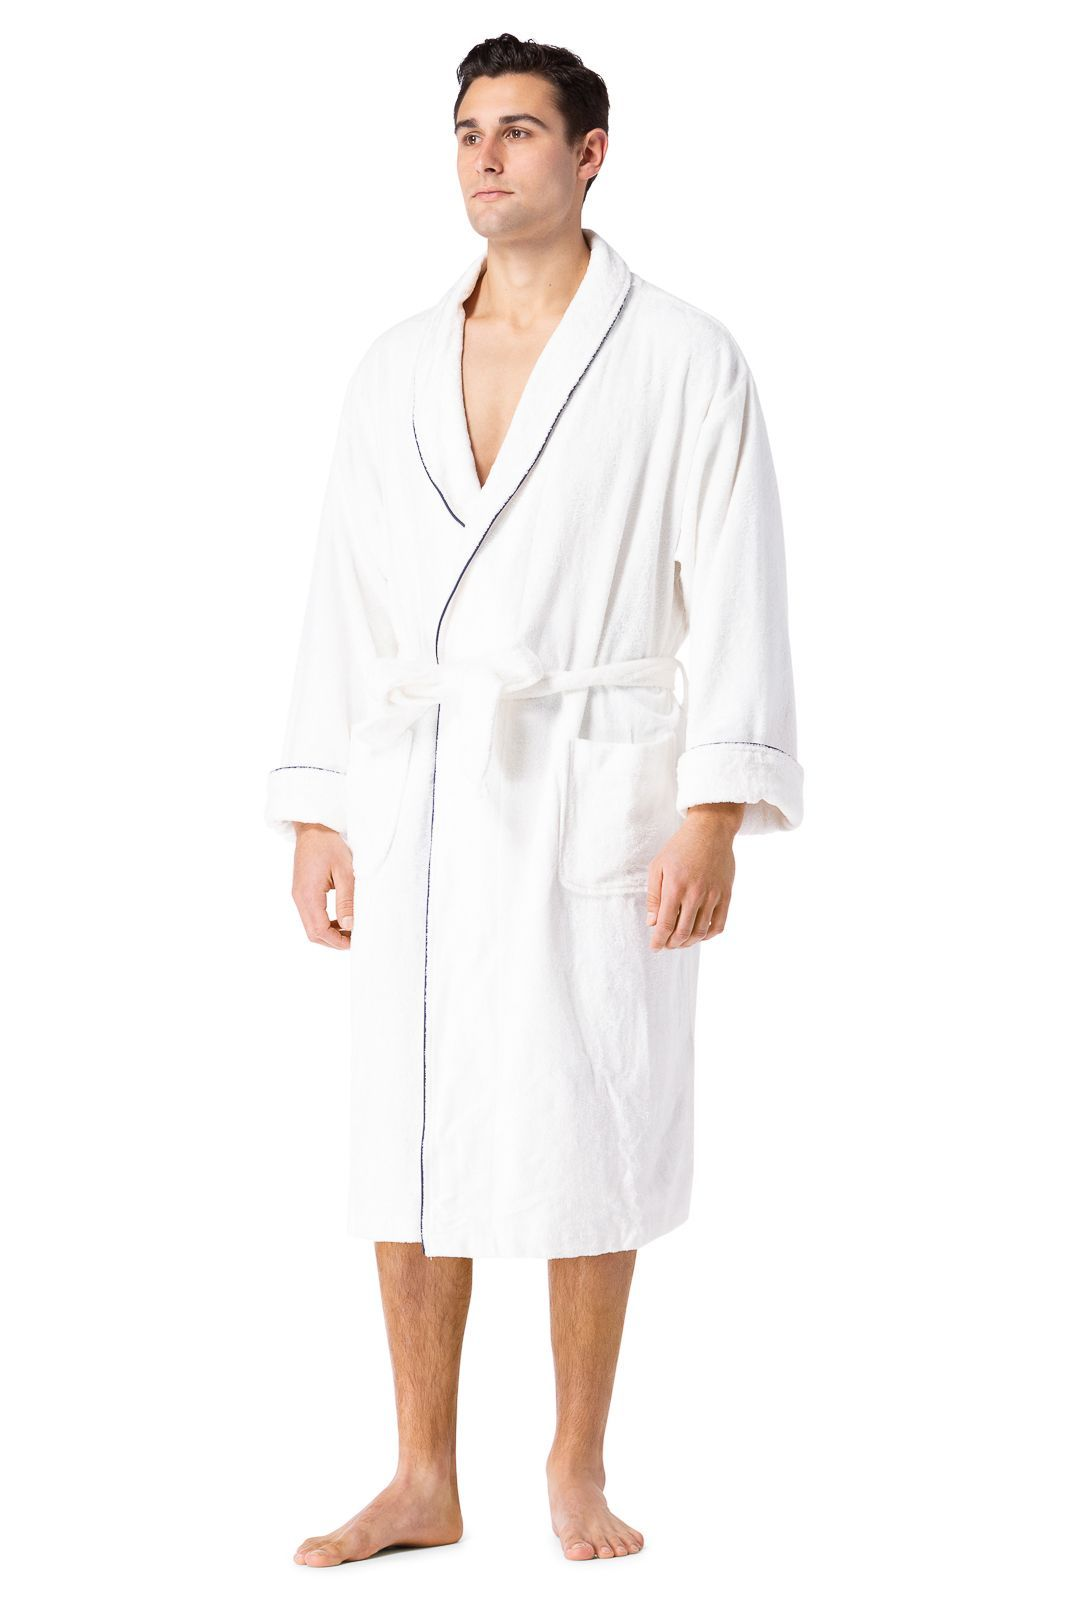 Fishers Finery - Men's Premier Turkish-Style Full Length Terry Cloth Spa Robe